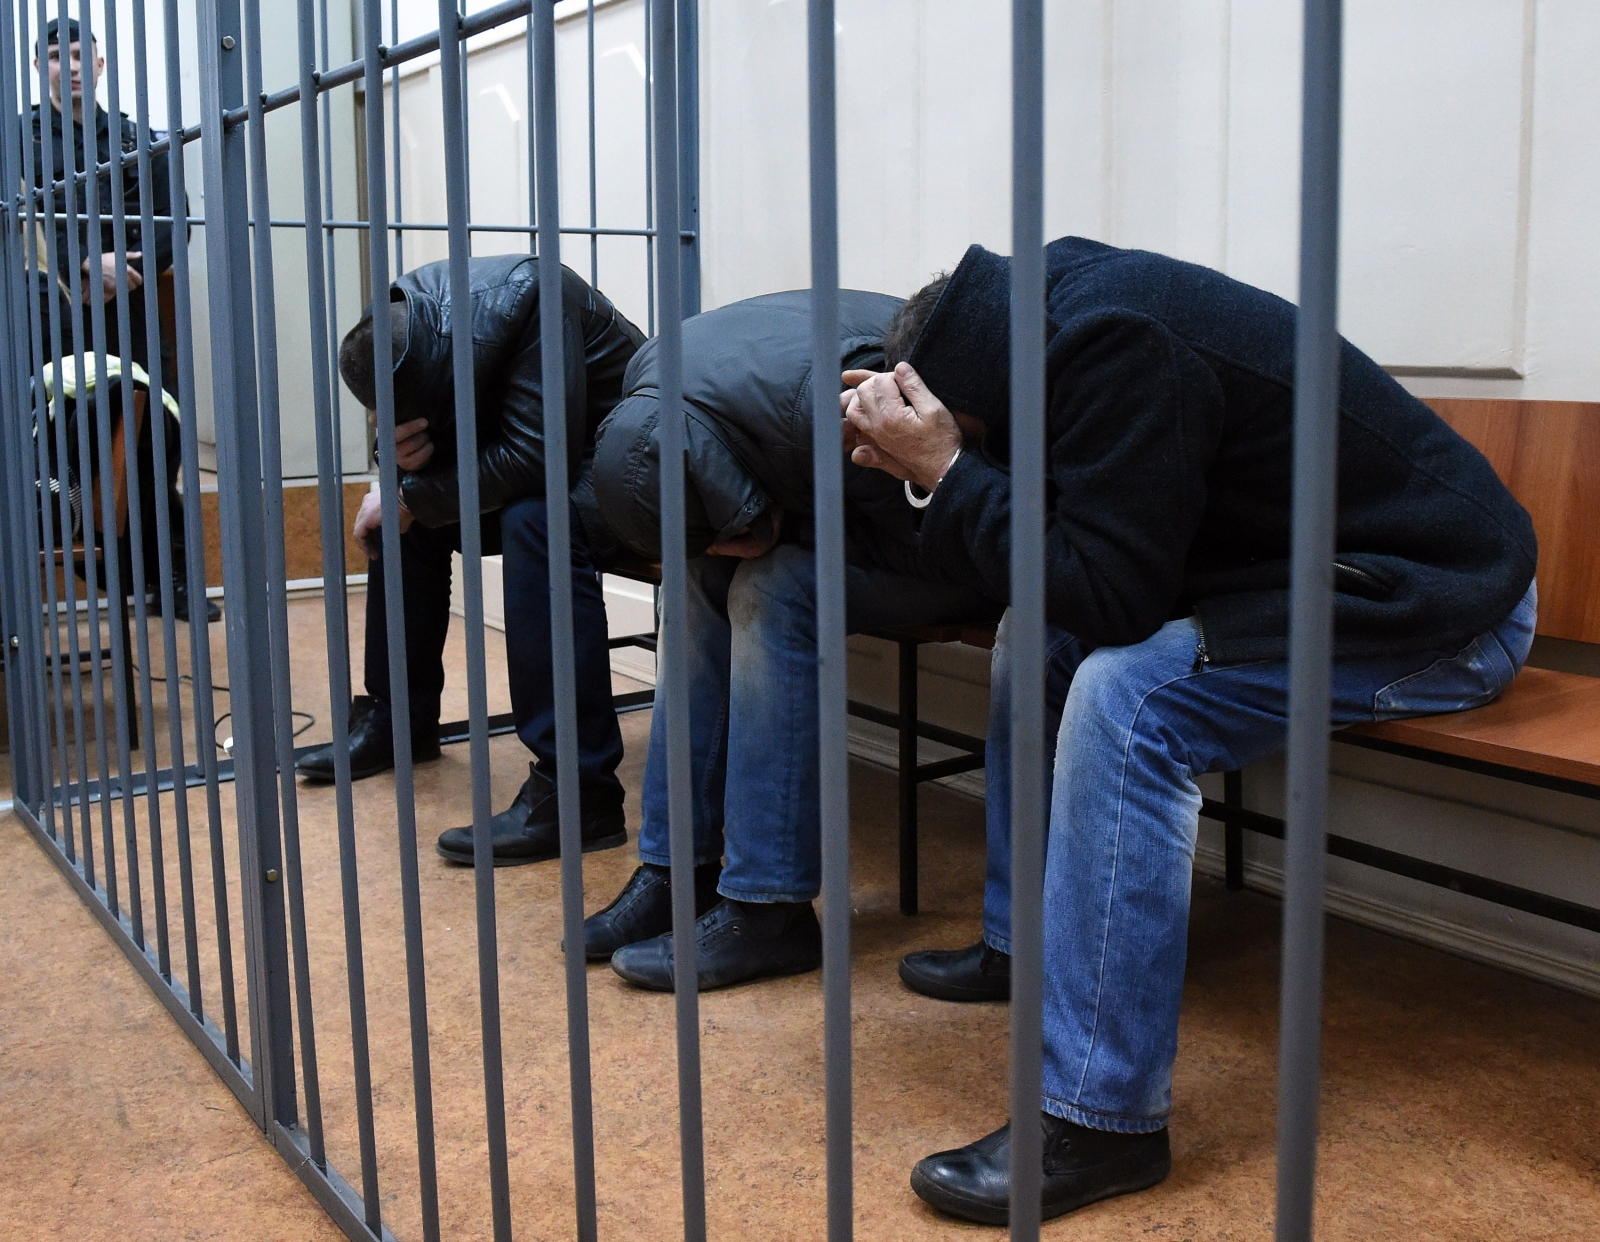 Three suspects in the Nemtsov murder